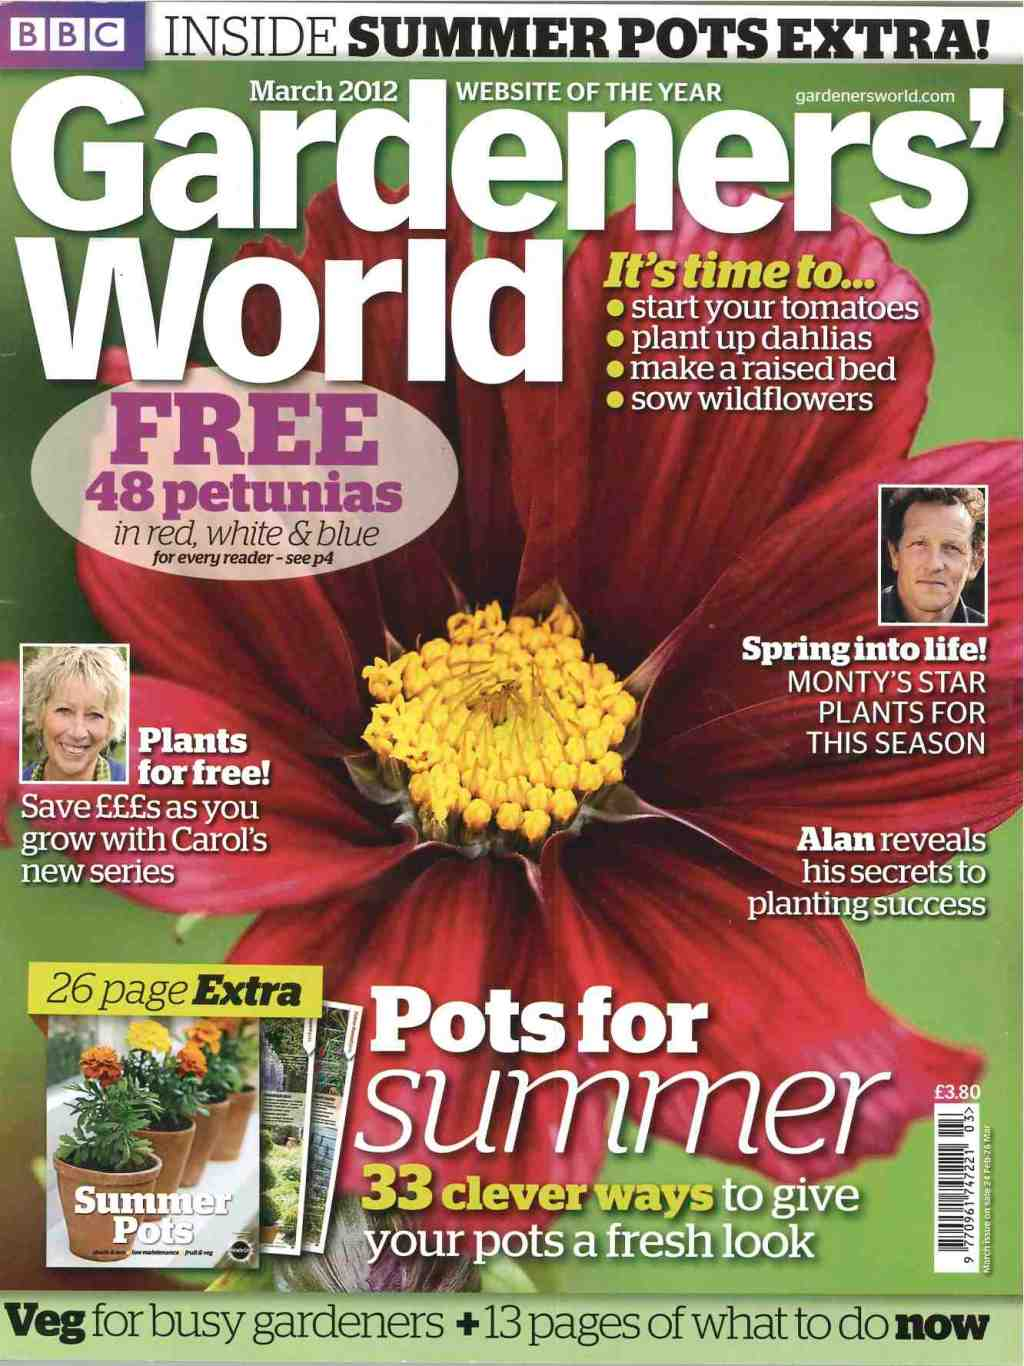 Gardeners World has a circulation of over 200,000